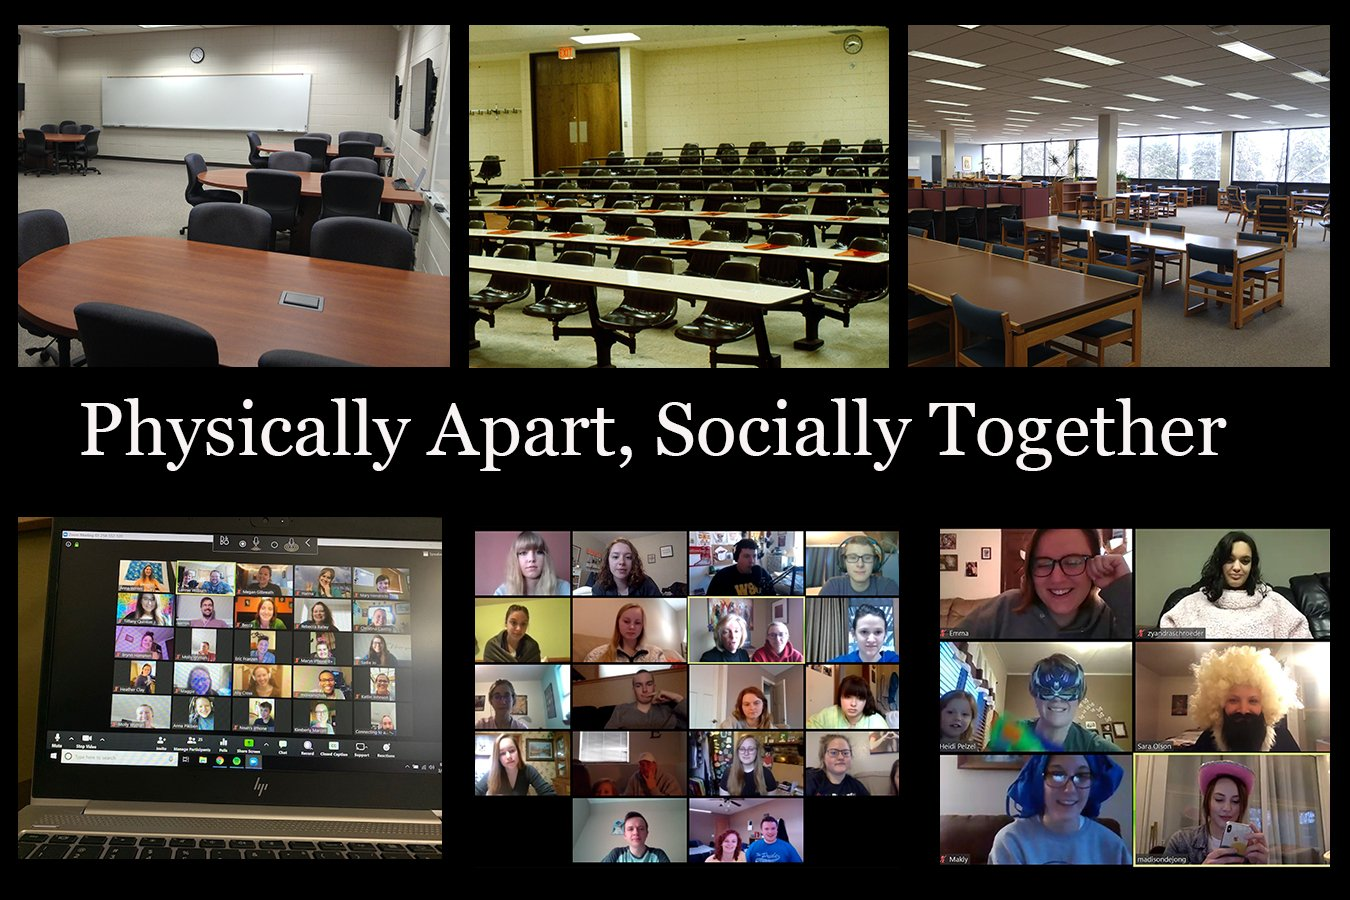 Physically Apart, Socially Together: The SDSU and Brookings Experience of the COVID-19 Pandemic. Images of empty classrooms and Zoom meetings.